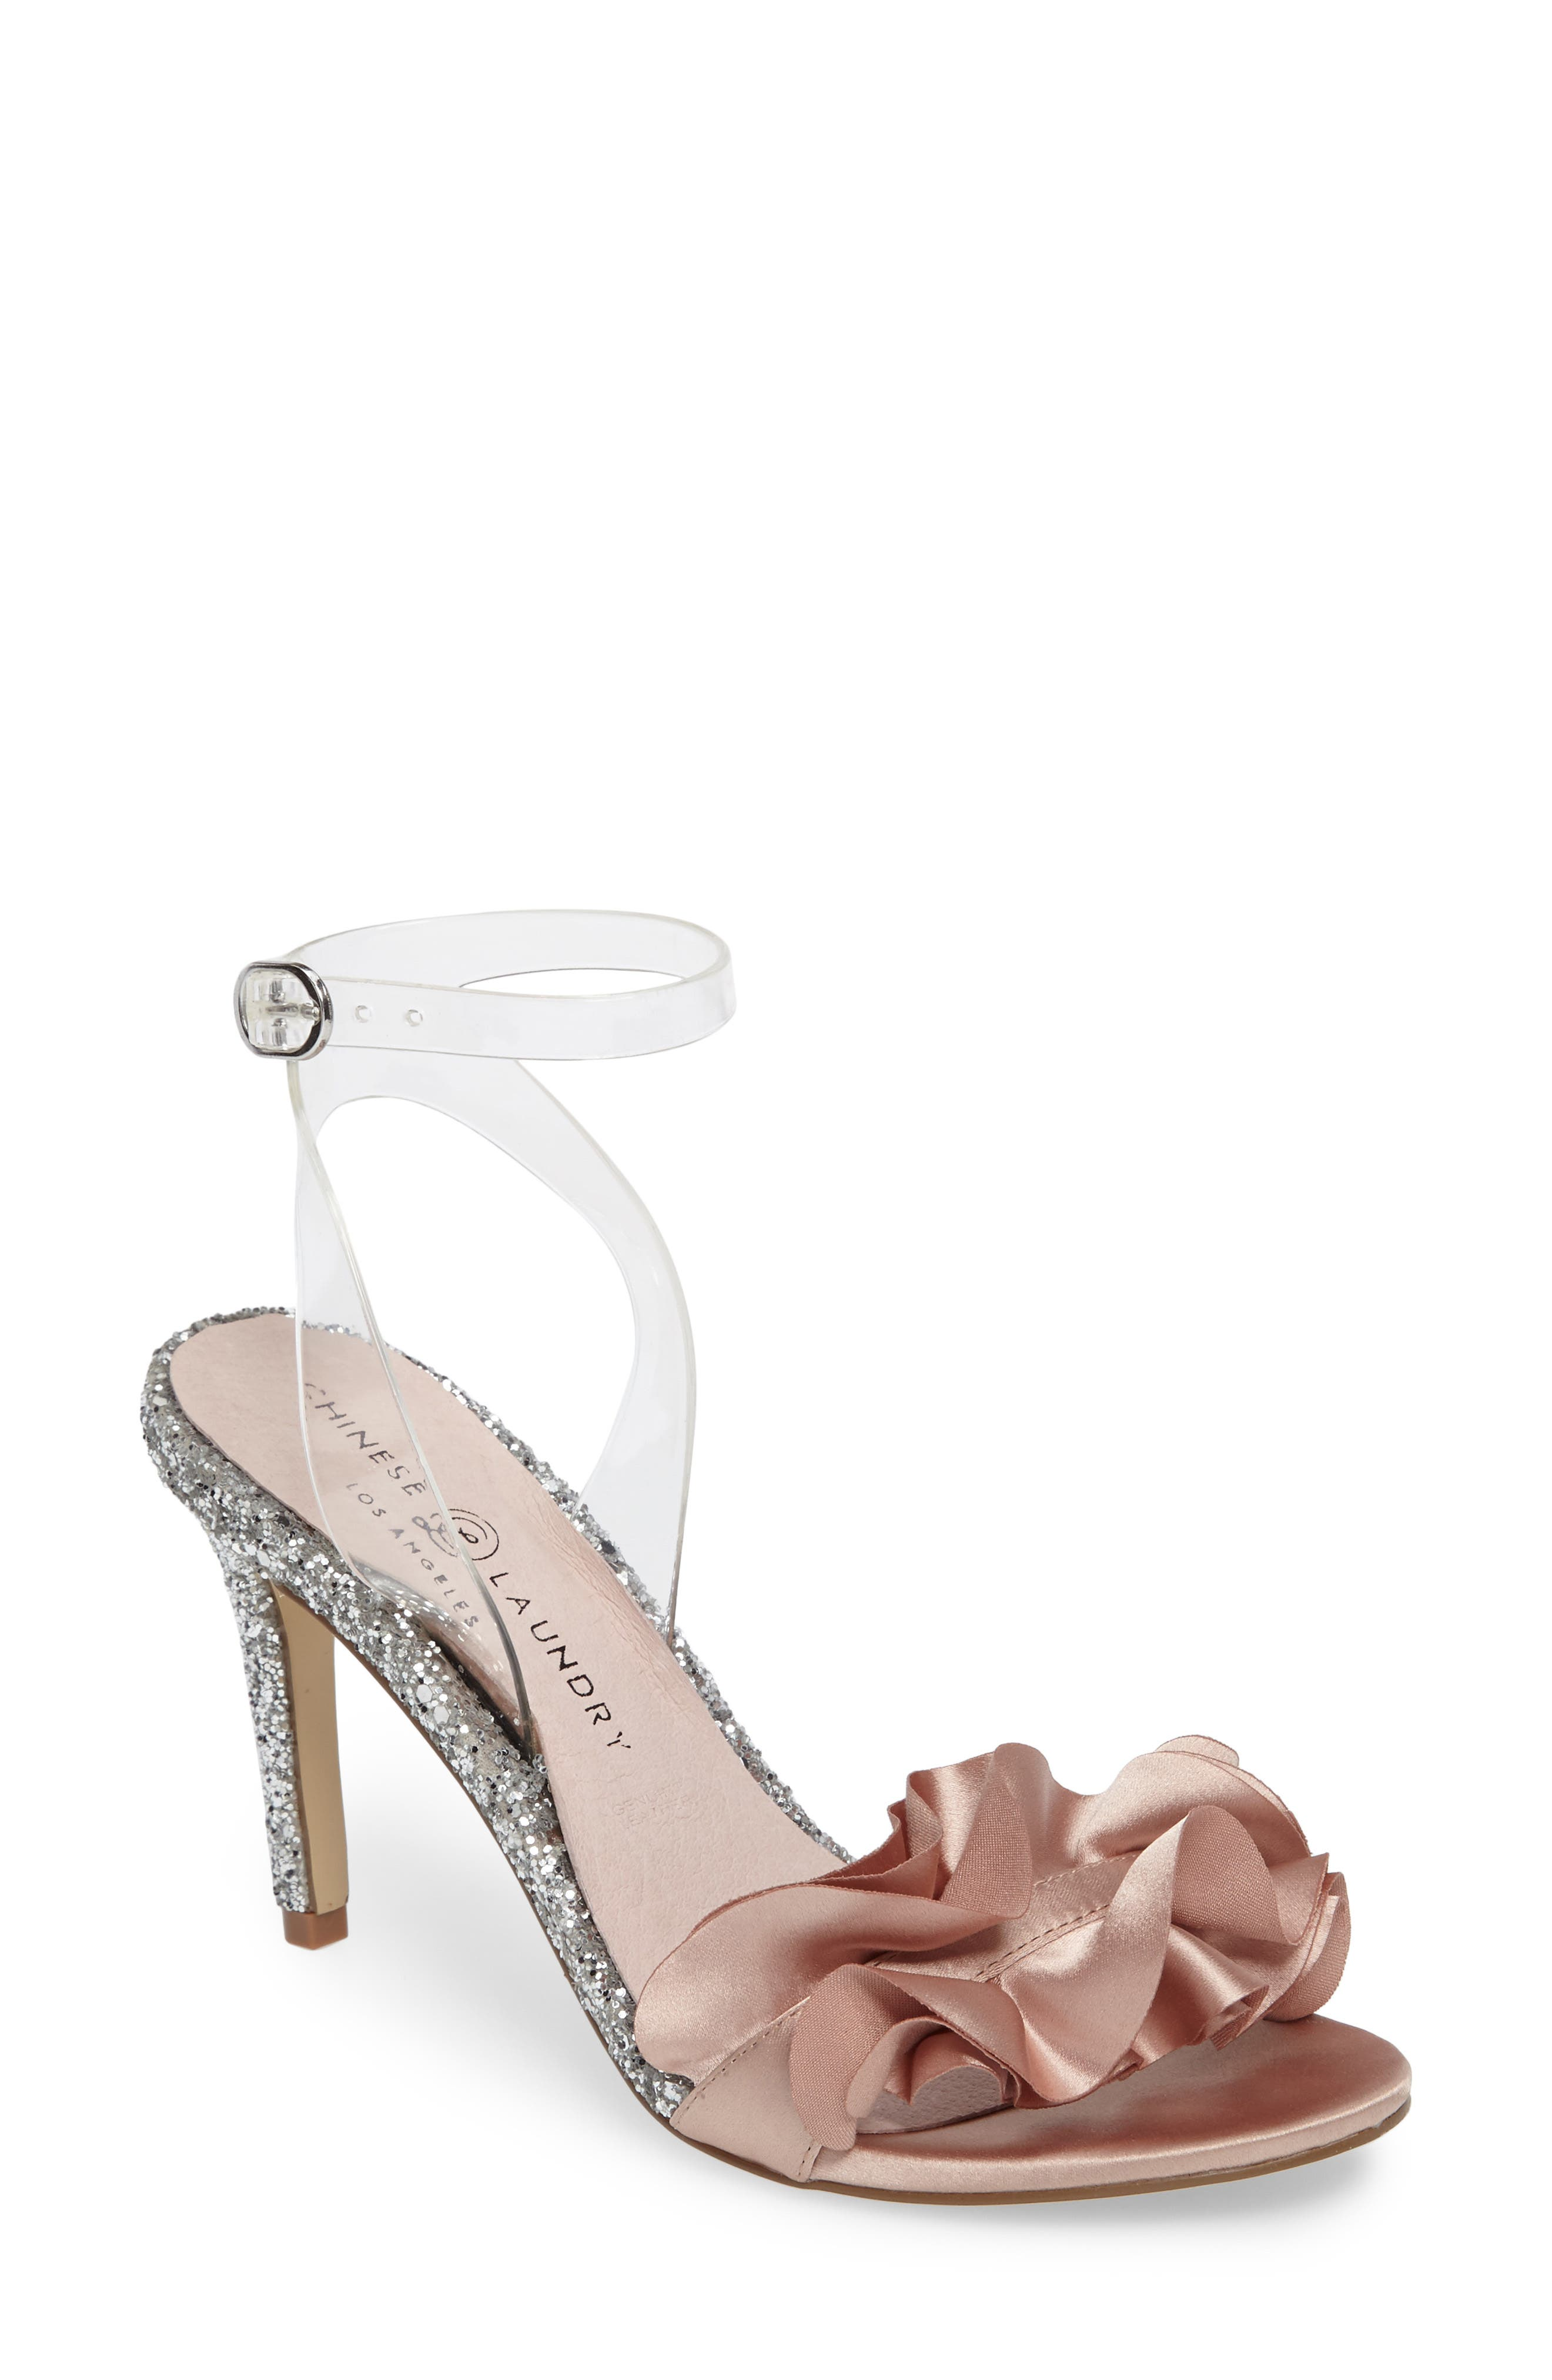 Janey Ruffled Sandal,                         Main,                         color, Nude/ Clear